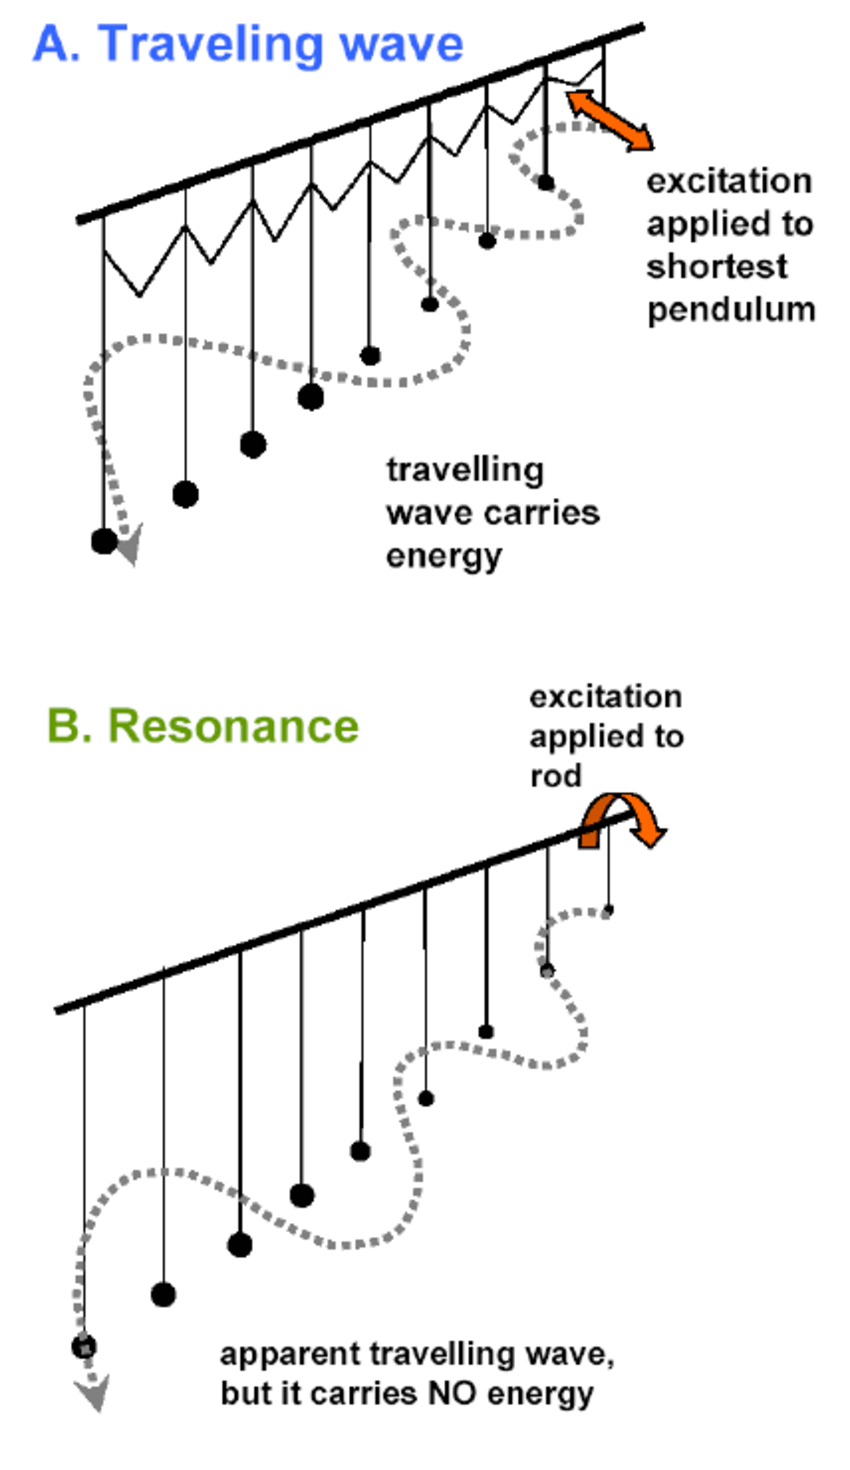 medium resolution of b k sy s pendulum analogy to illustrate the difference between a travelling wave and resonance in a